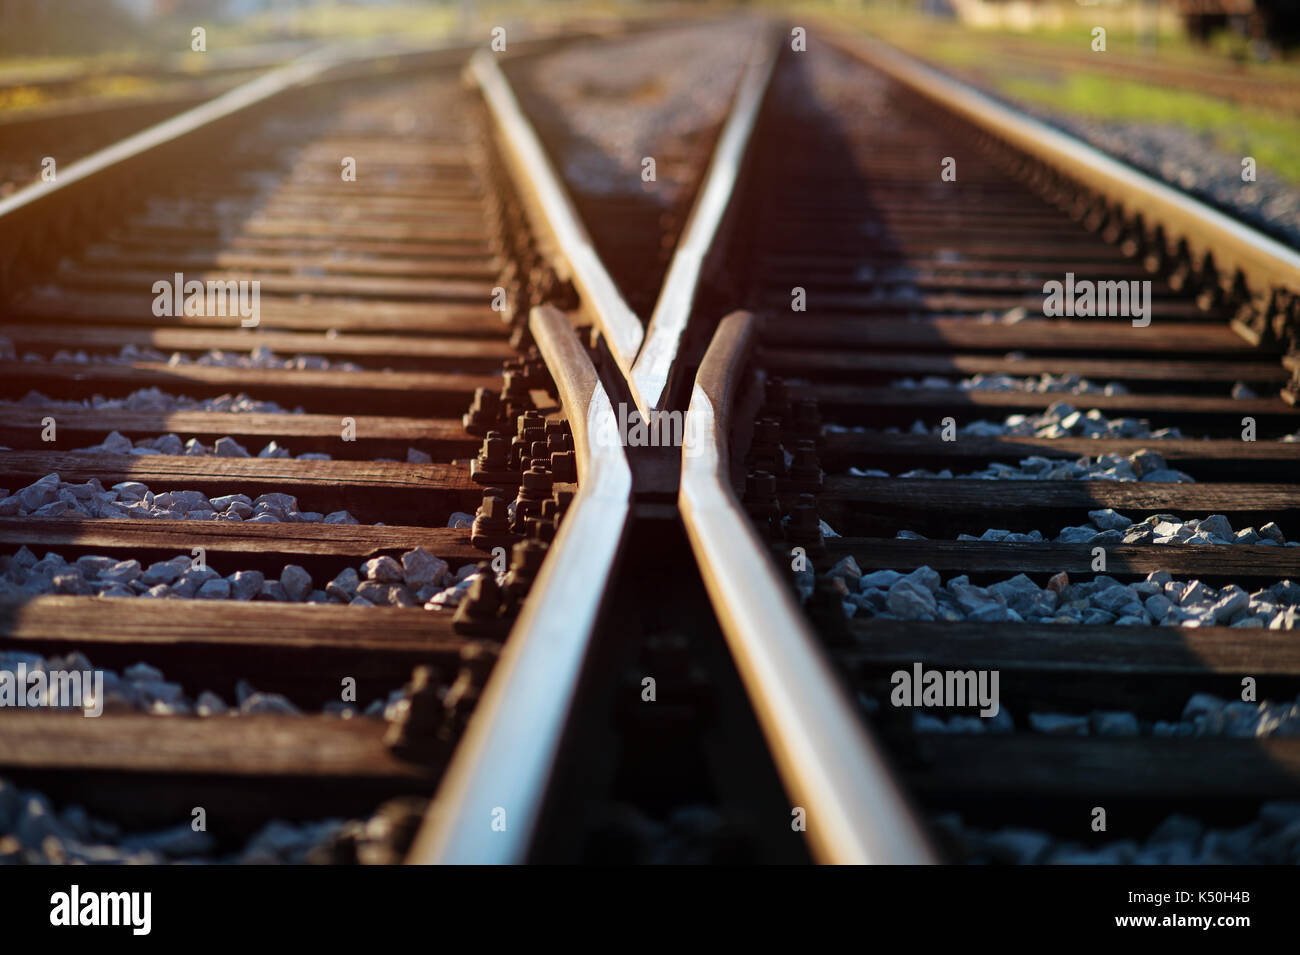 Railway crossroads. Choosing right way, making decision concept. - Stock Image